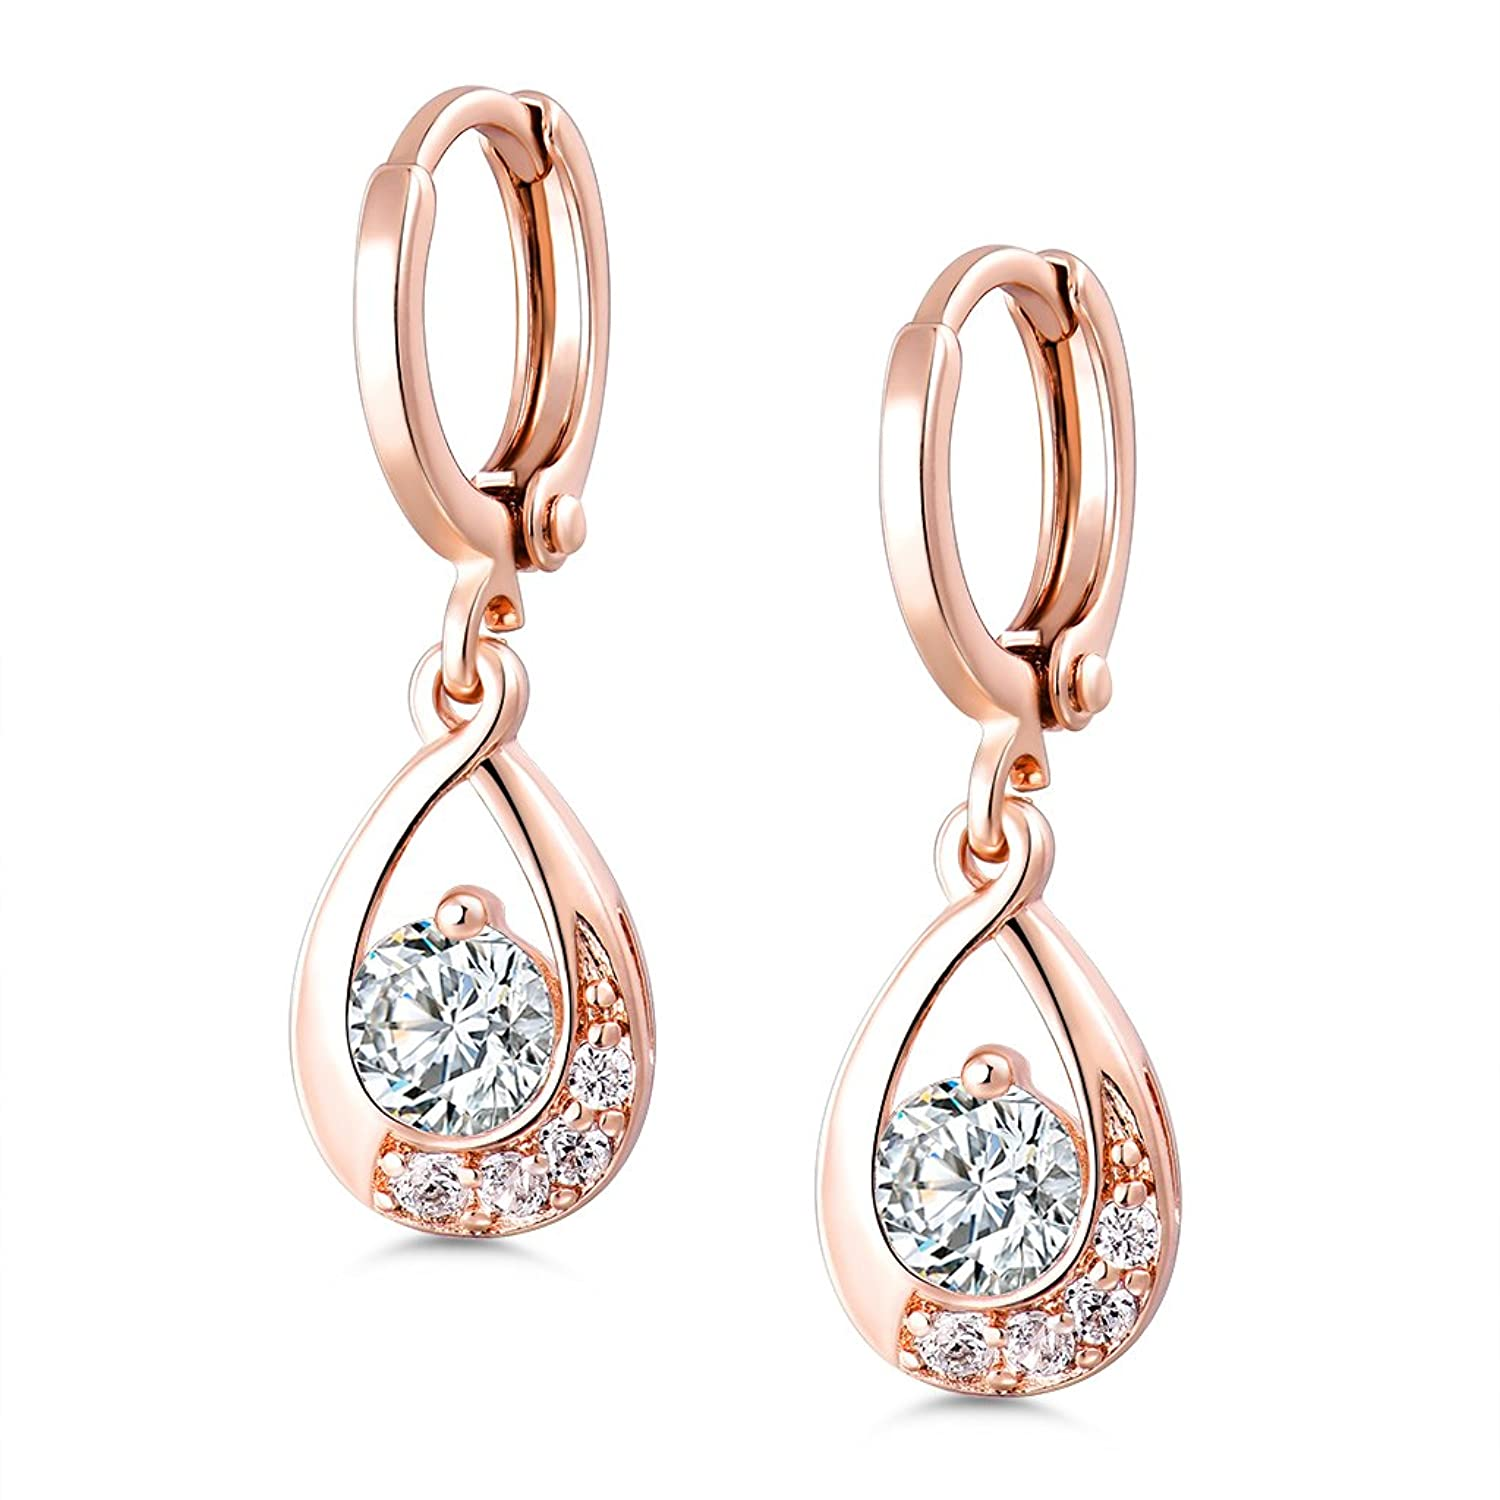 GULICX Leverback Dangle Earrings with Clear Round Center Cubic Zirconia for Women VBgwPoY